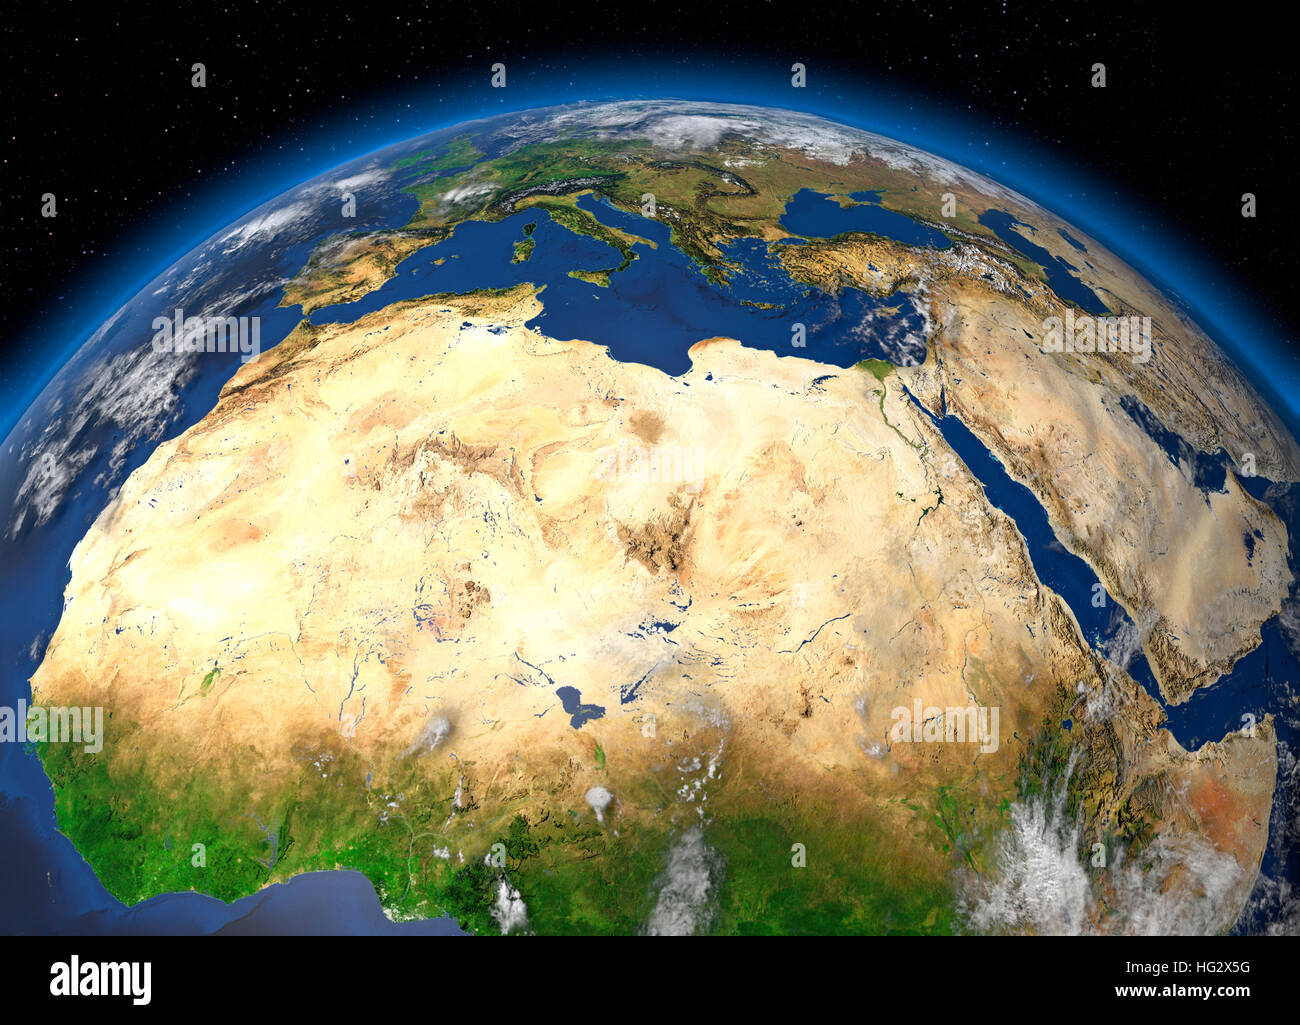 Earth viewed from space showing the Sahara Desert and North Africa. Realistic digital illustration including relief - Stock Image